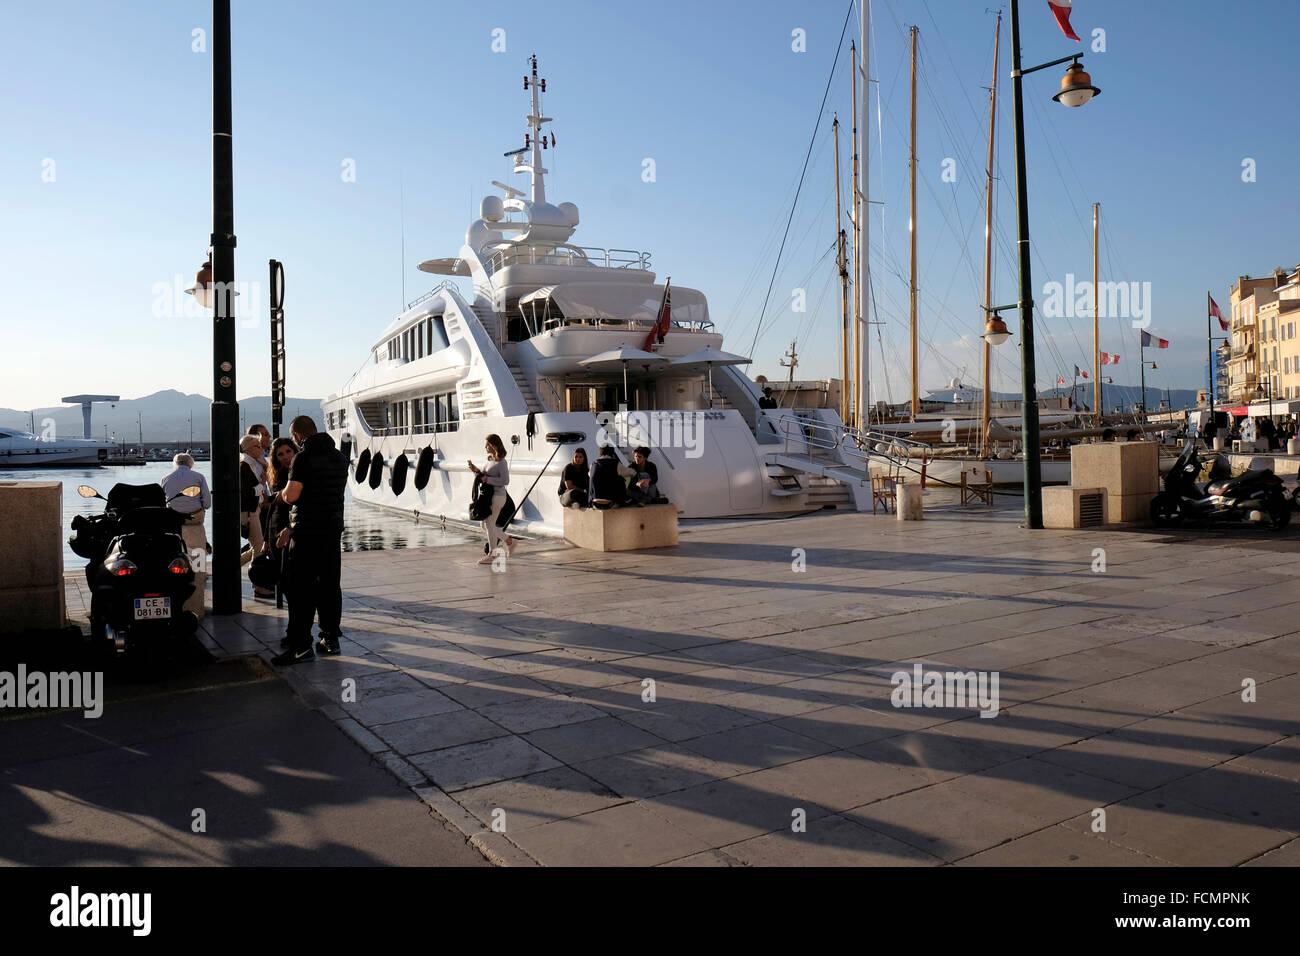 Luxury yacht moored in the harbour at St Tropez with young people sitting and passers by.  Evening shot. - Stock Image